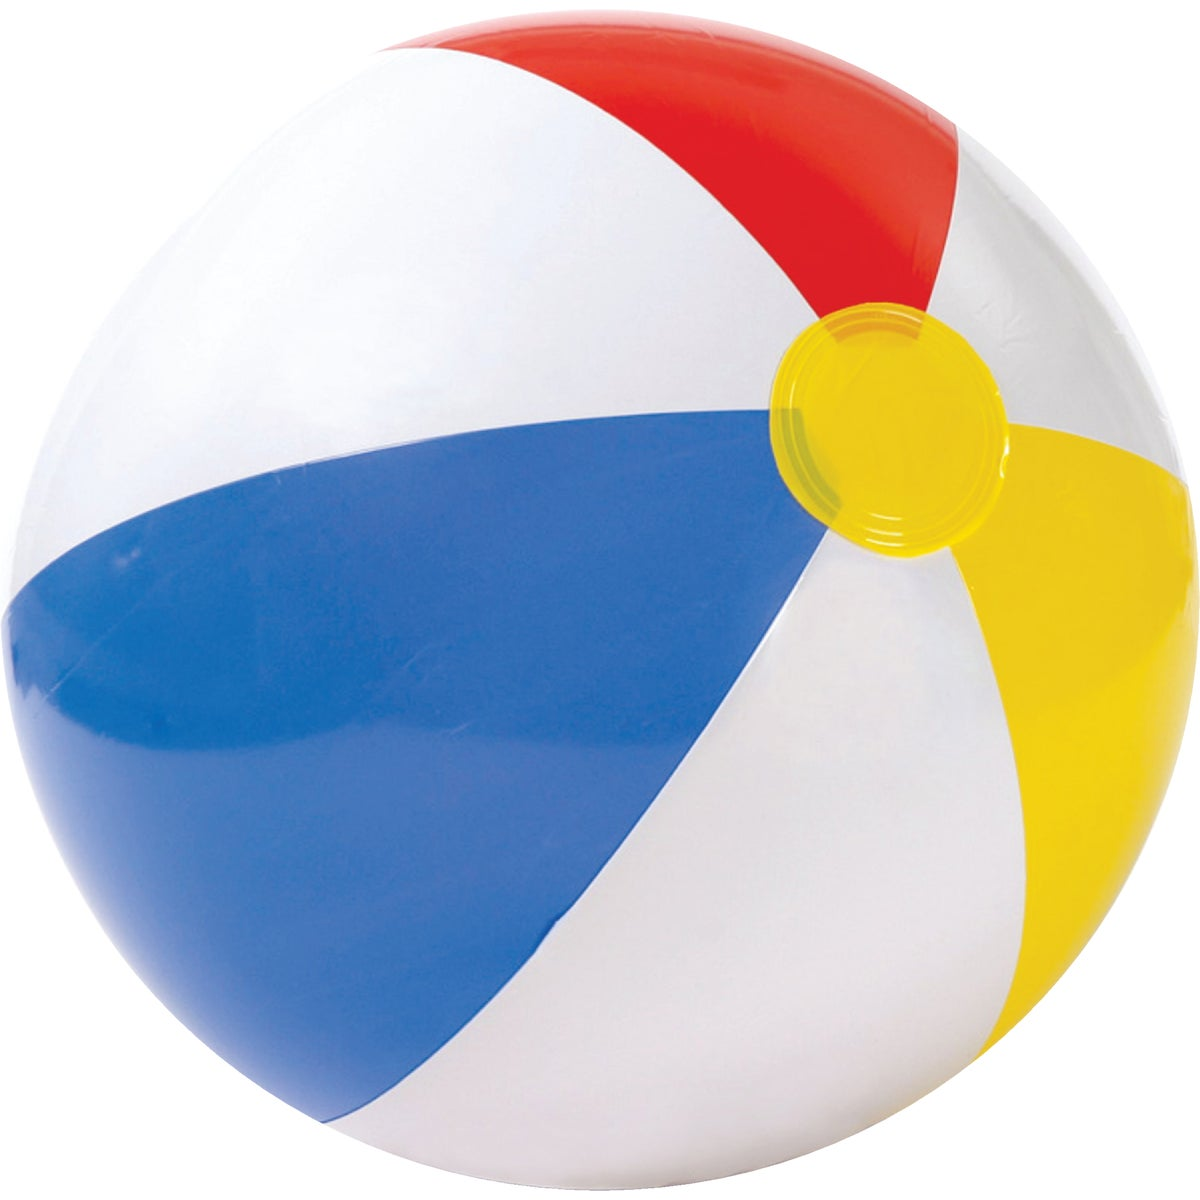 GLOSSY PANEL BALL - 59020EP by Intex Recreation